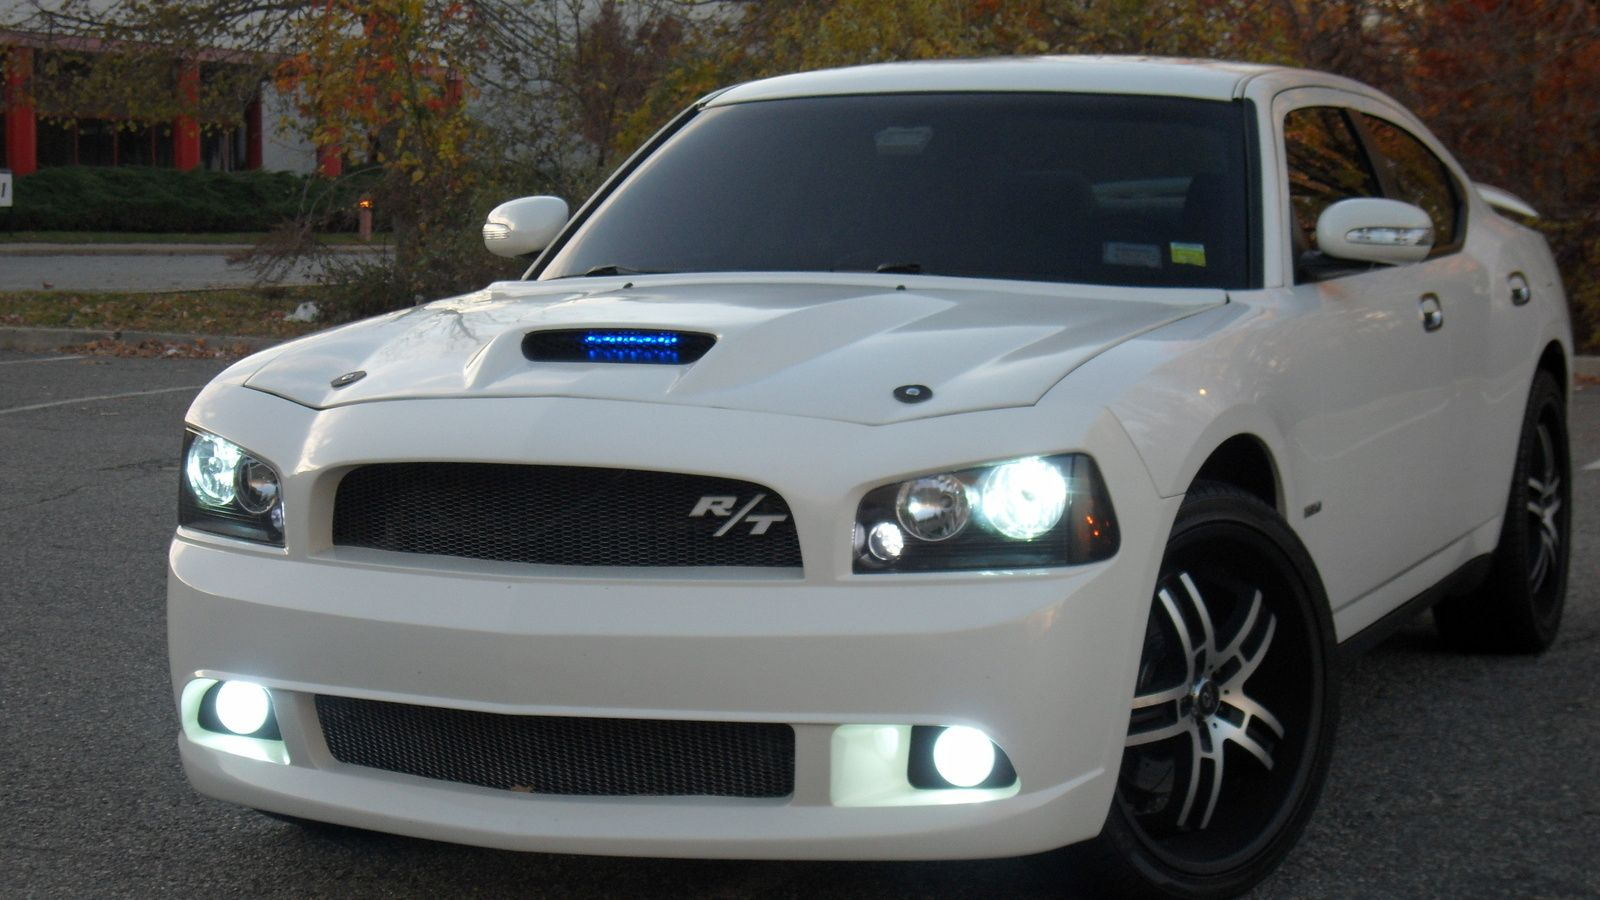 Dodge 08 dodge charger srt8 specs : 2007 Dodge Charger R/T AWD - Want. So Bad. So So Very Bad. Love ...